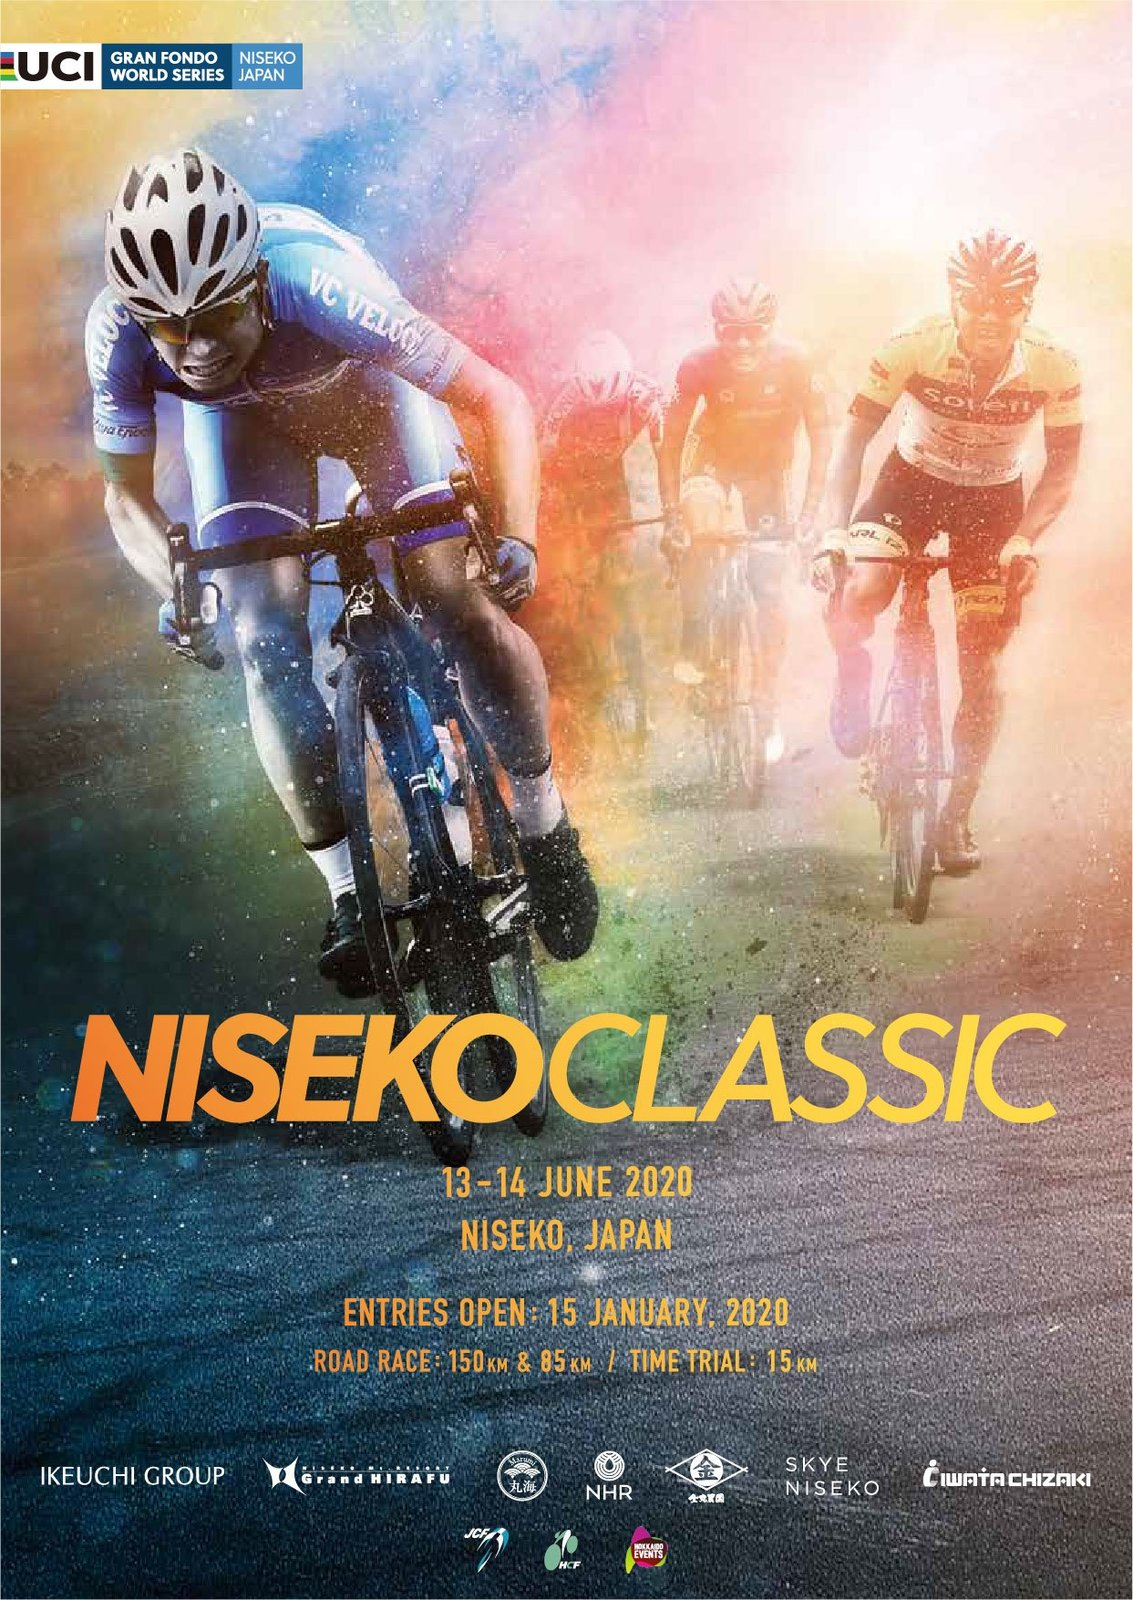 niseko classic 2020 poster bicycle race